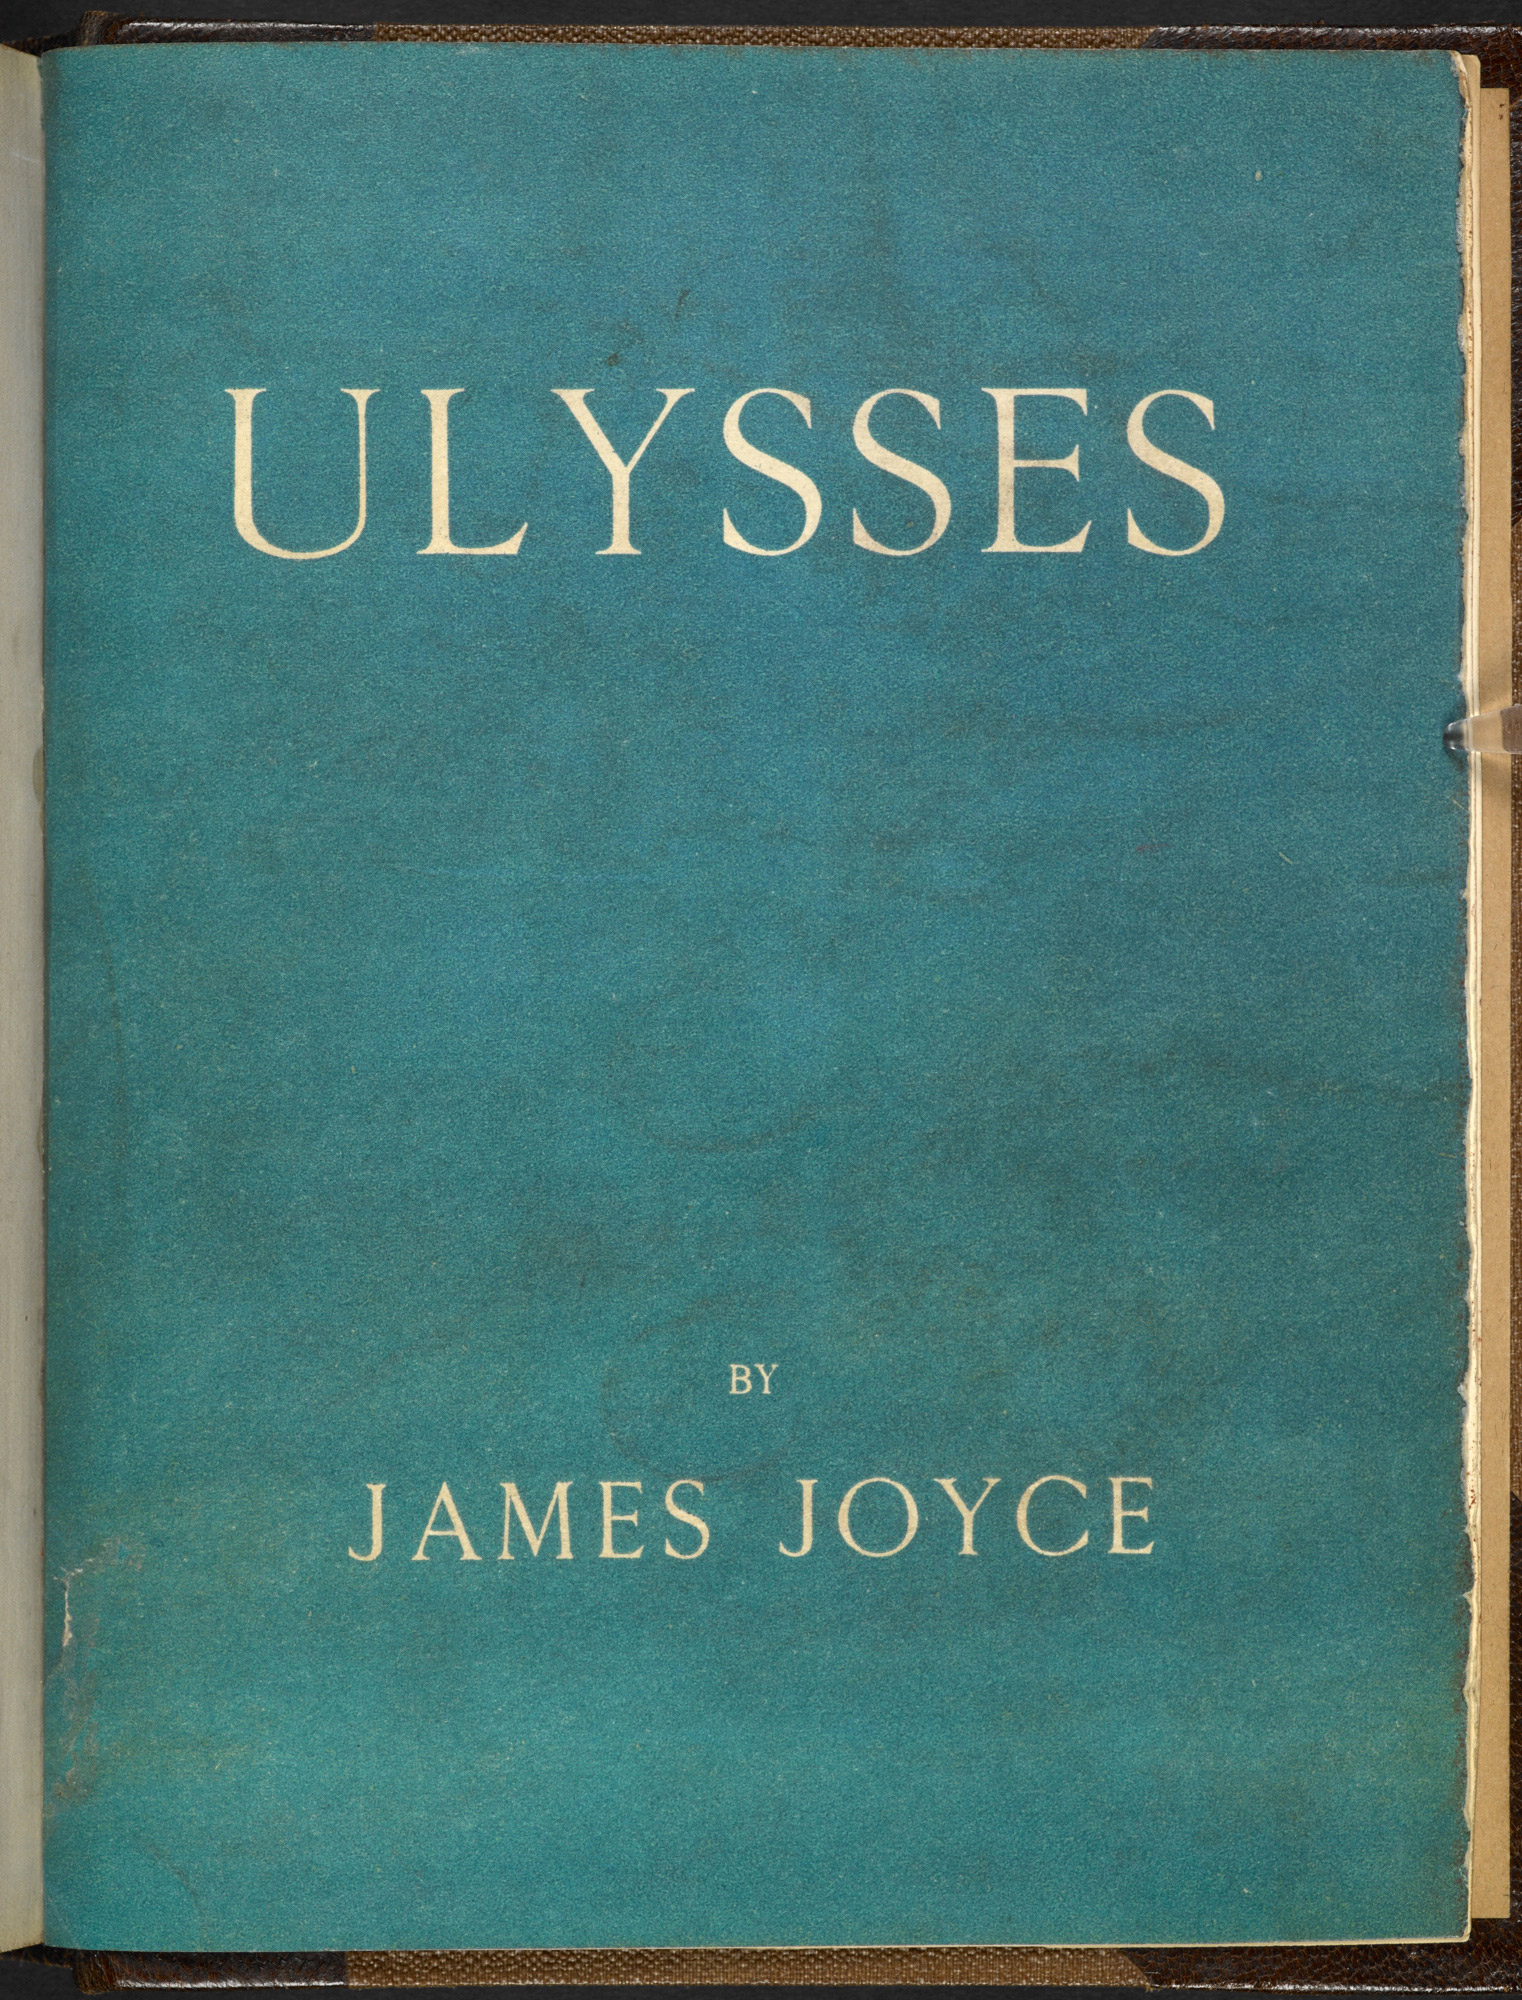 'Ulysses' by James Joyce, published by Shakespeare and Company